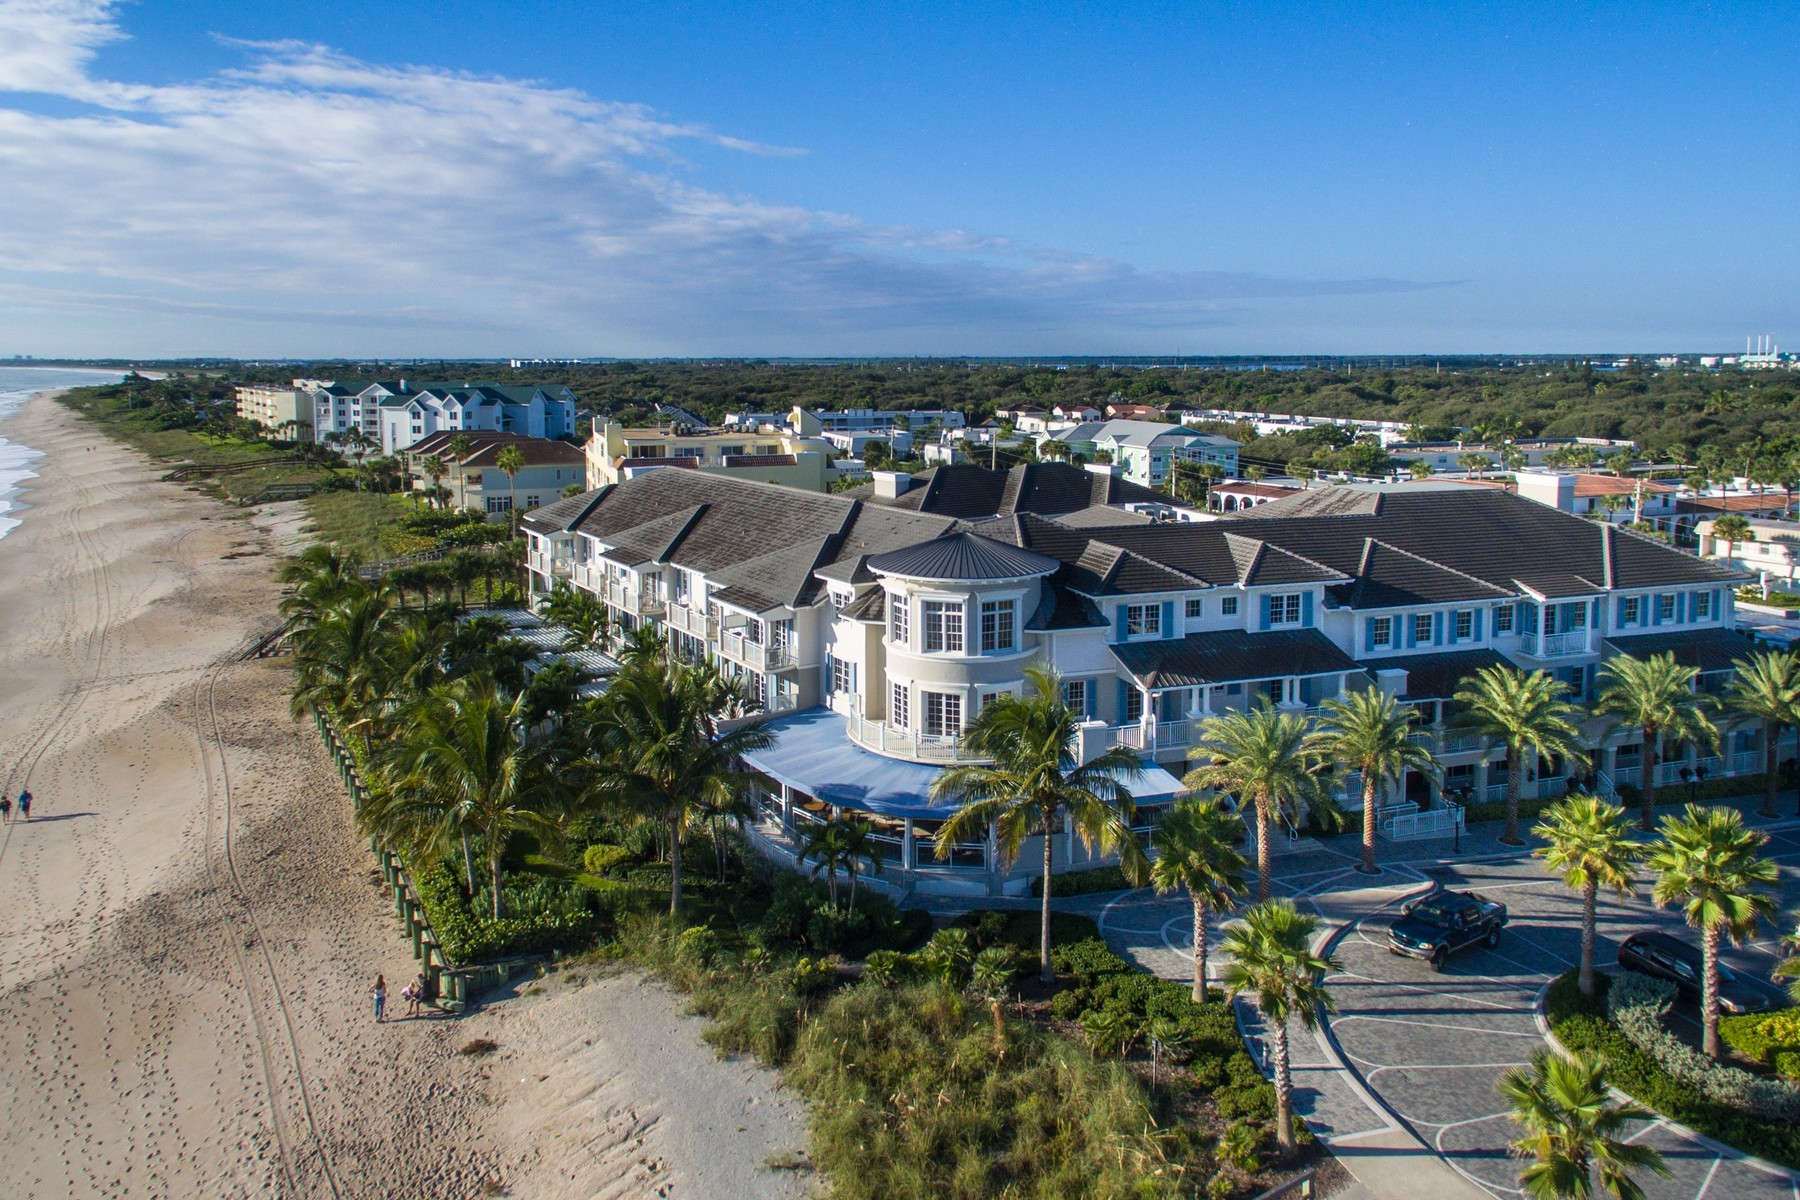 Condominium for Sale at Ocean Park Penthouse with Panoramic Views 1010 Easter Lily Lane, #204 Vero Beach, Florida 32963 United States